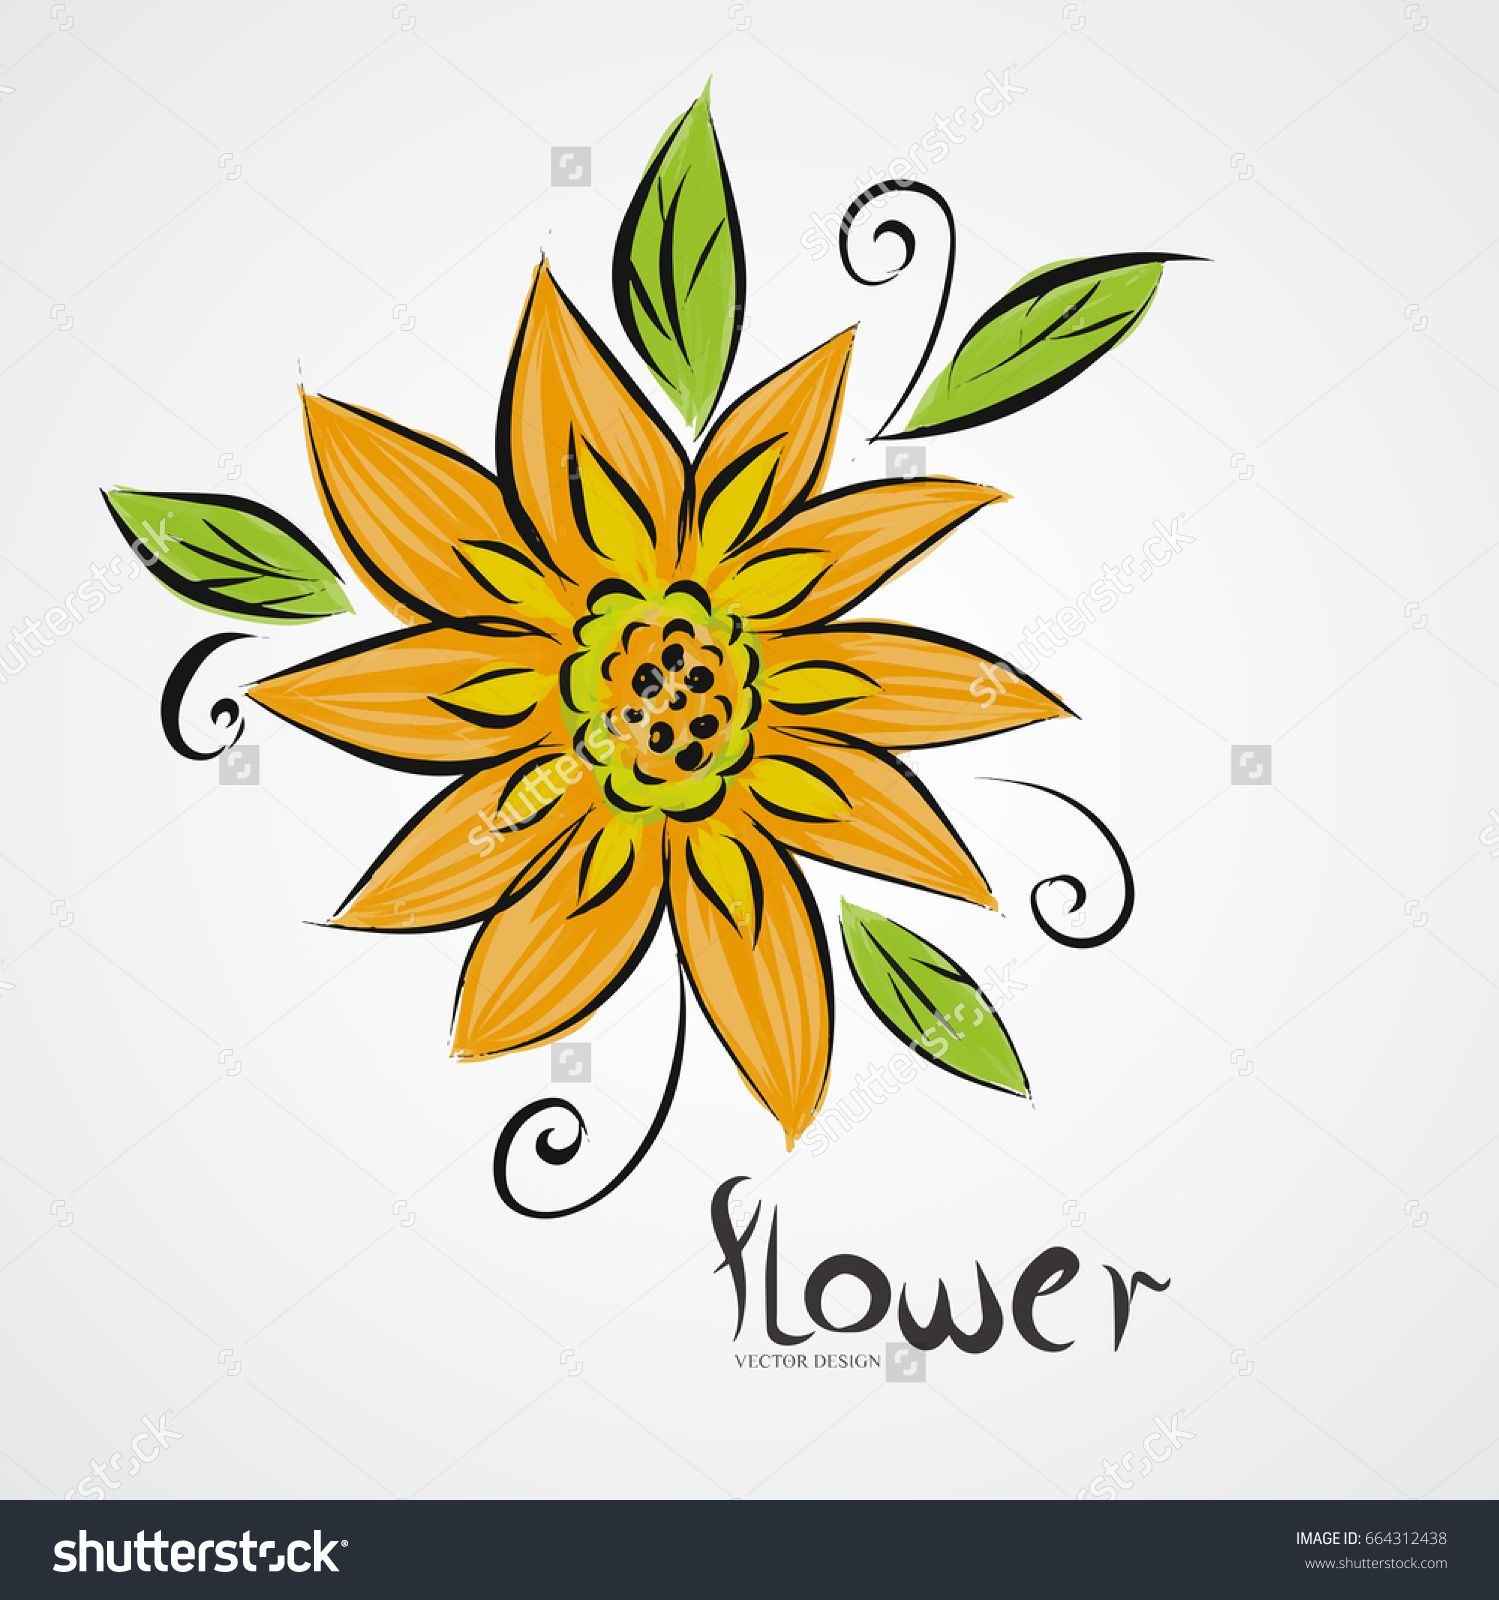 Yellow Sunflower drawing,vector illustration | vector design | Pinterest